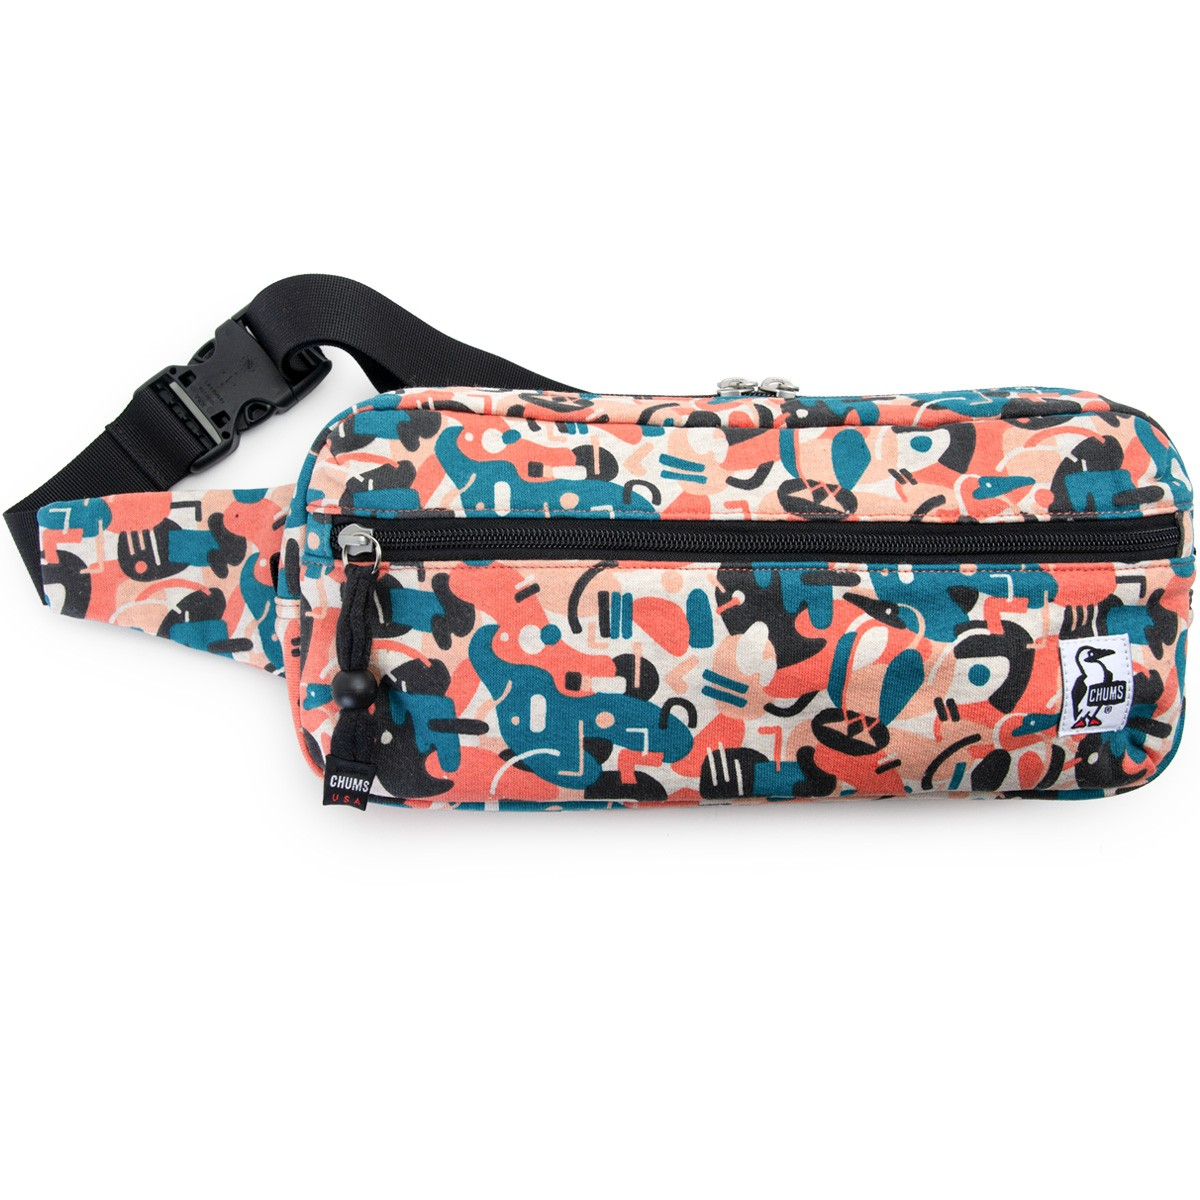 CHUMS Square Waist Bag Sweat